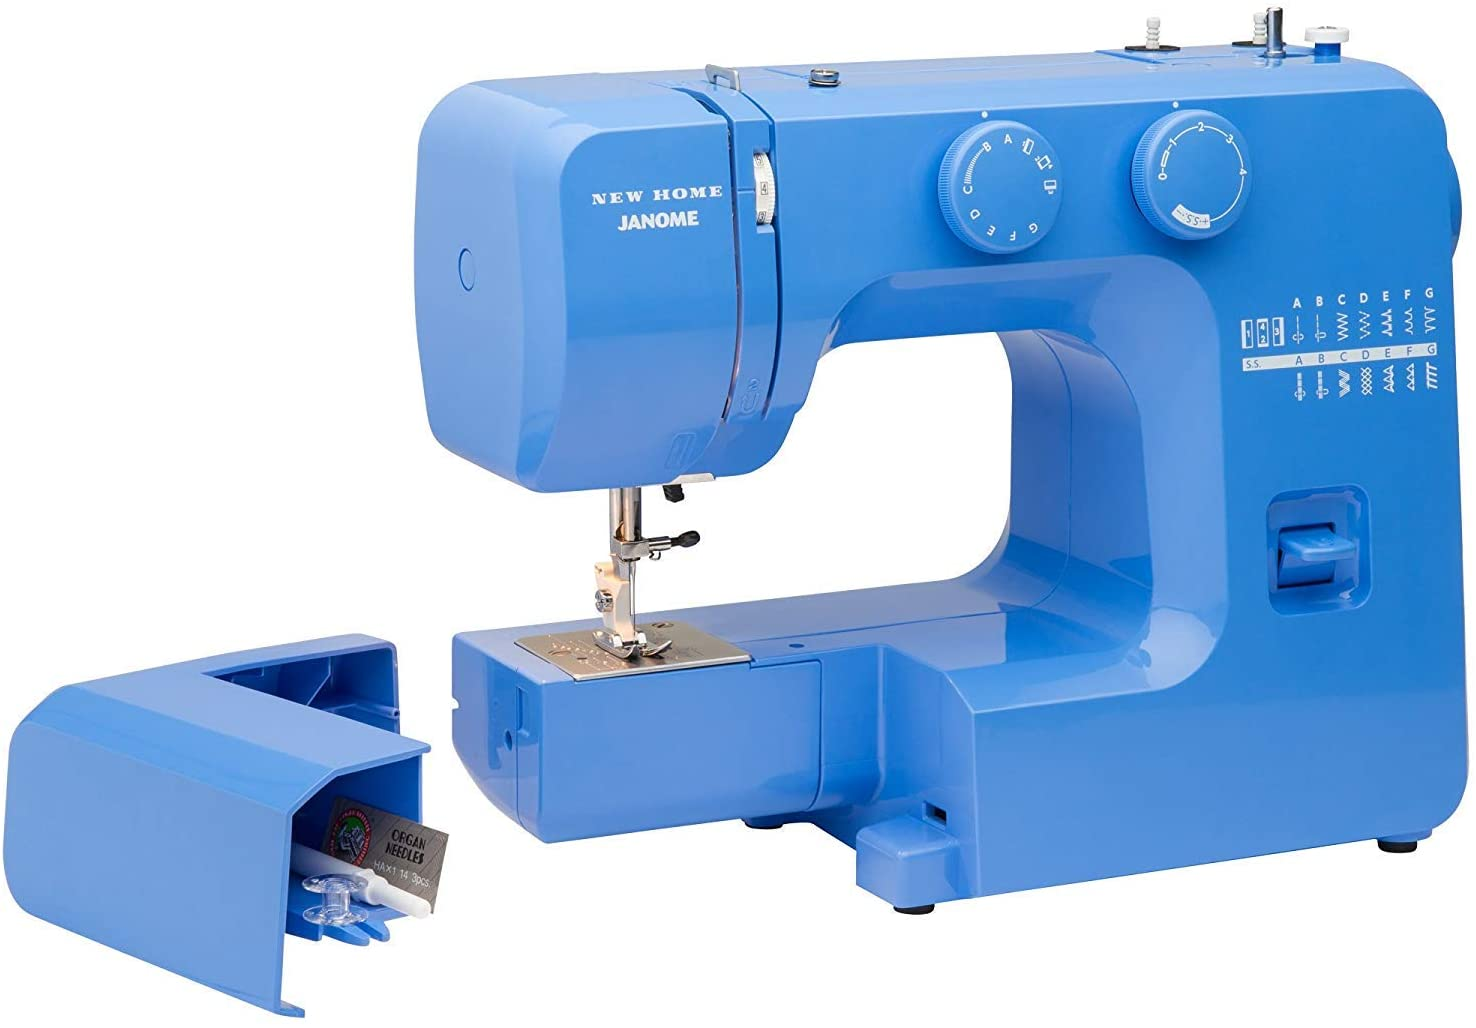 Janome Blue Couture Easy-to-Use Sewing Machine Interior with Denver Mall Met We OFFer at cheap prices